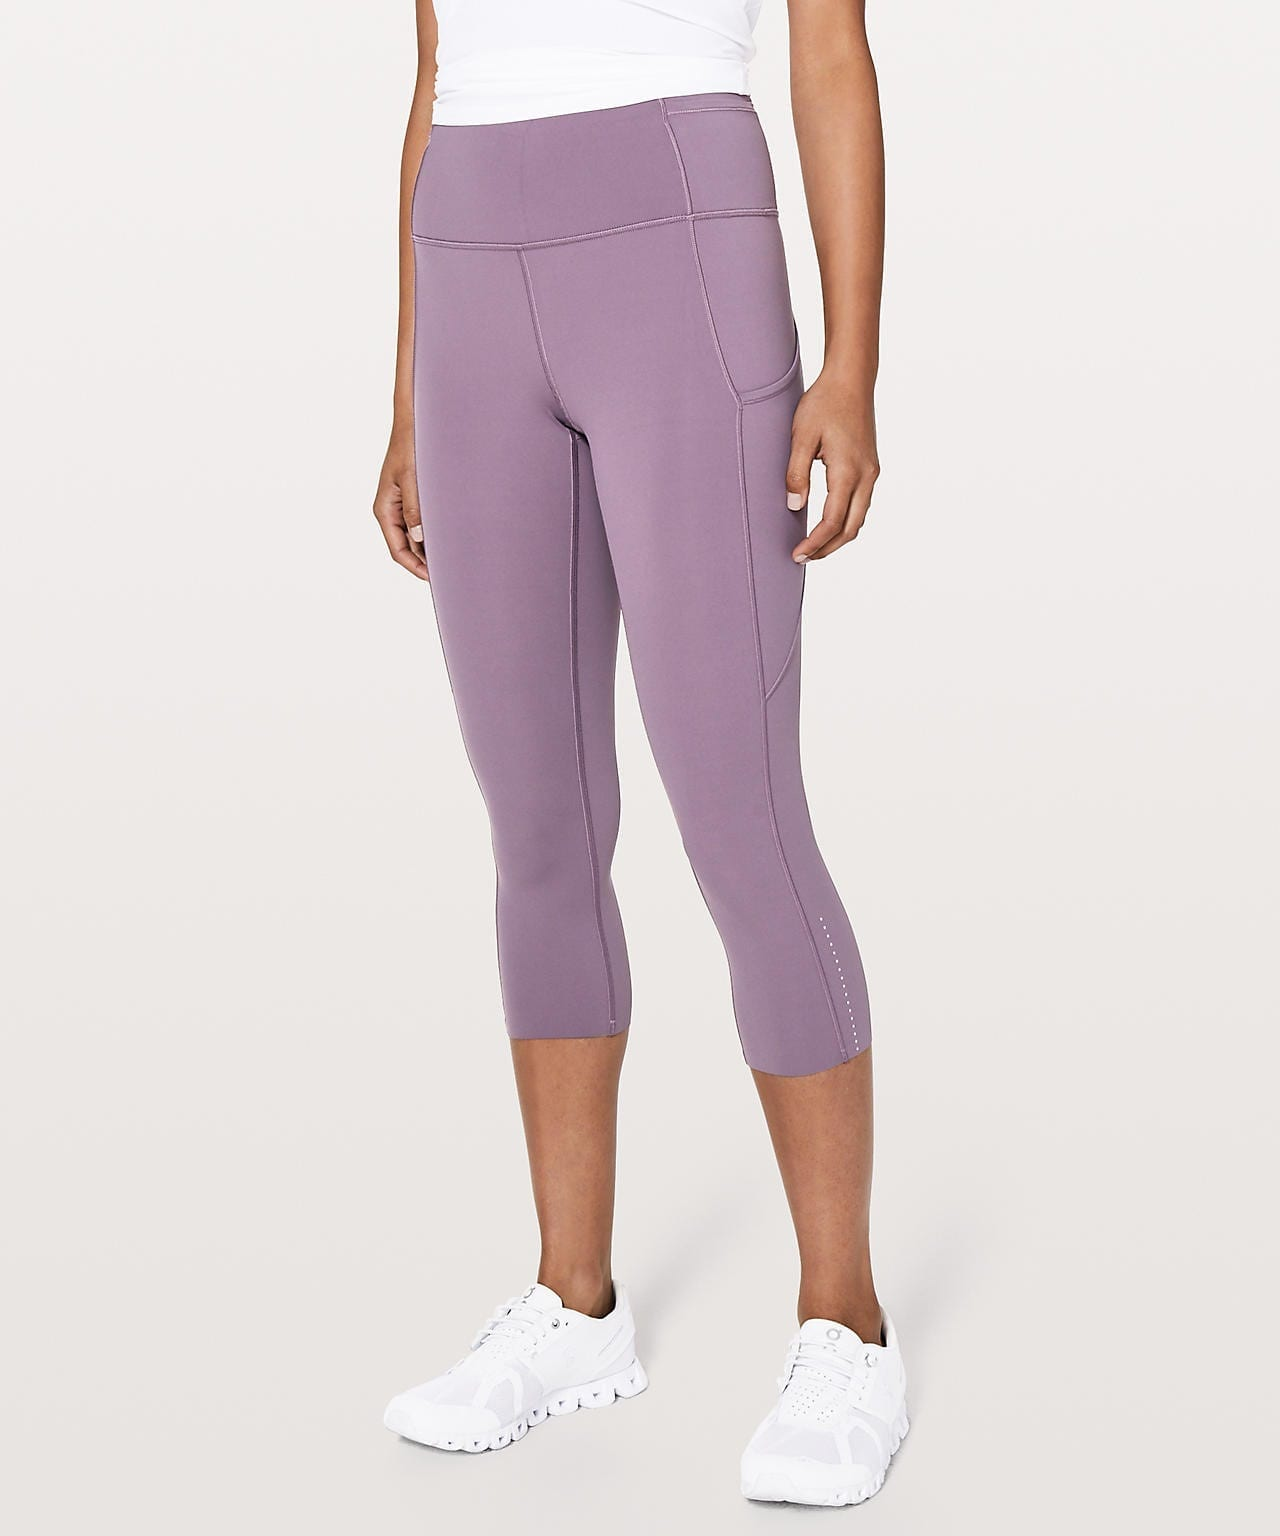 Lululemon - Fast & Free Crop II Smoked Mulberry